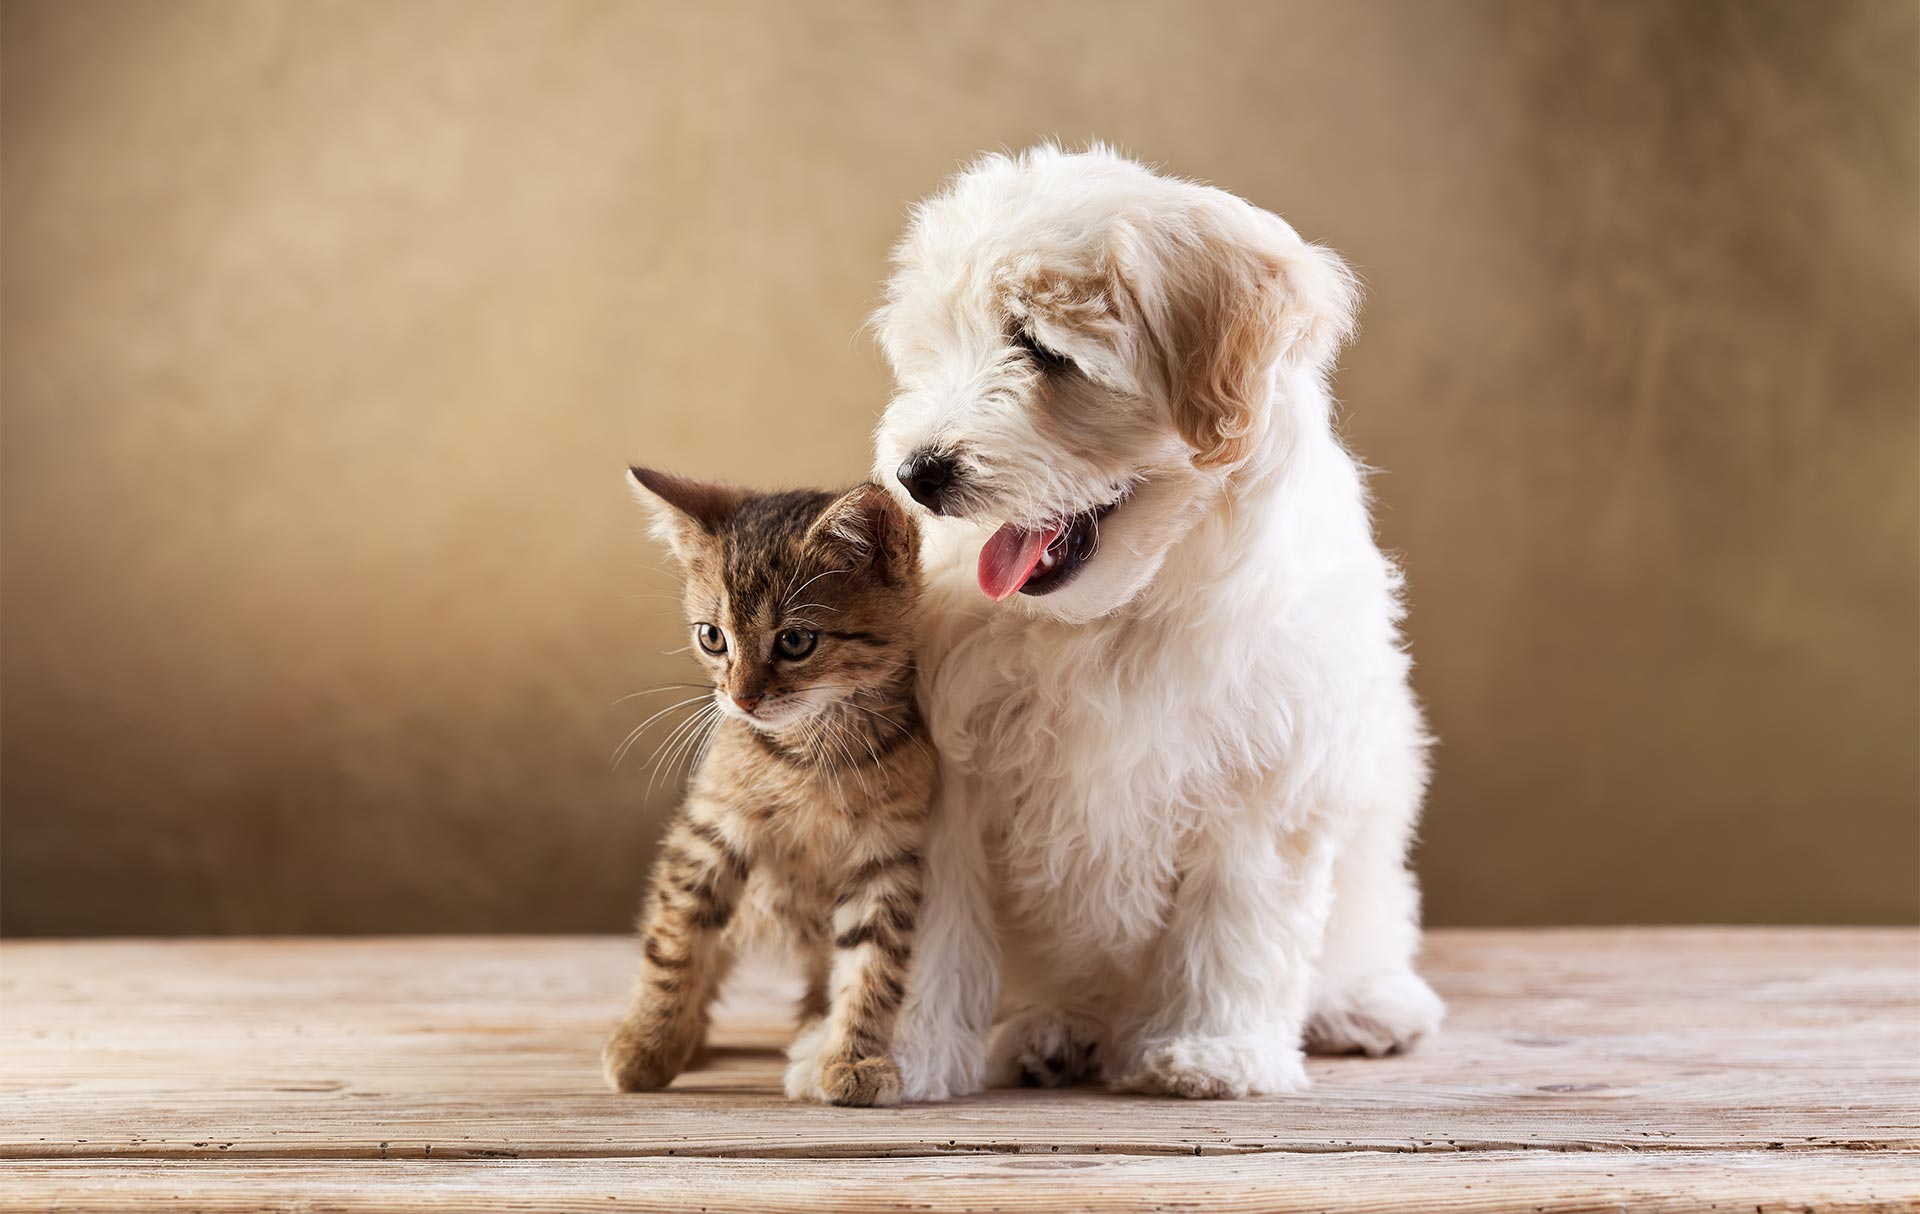 Pet Insurance Online - Save Yourself the Grief of Expensive Vet Bills